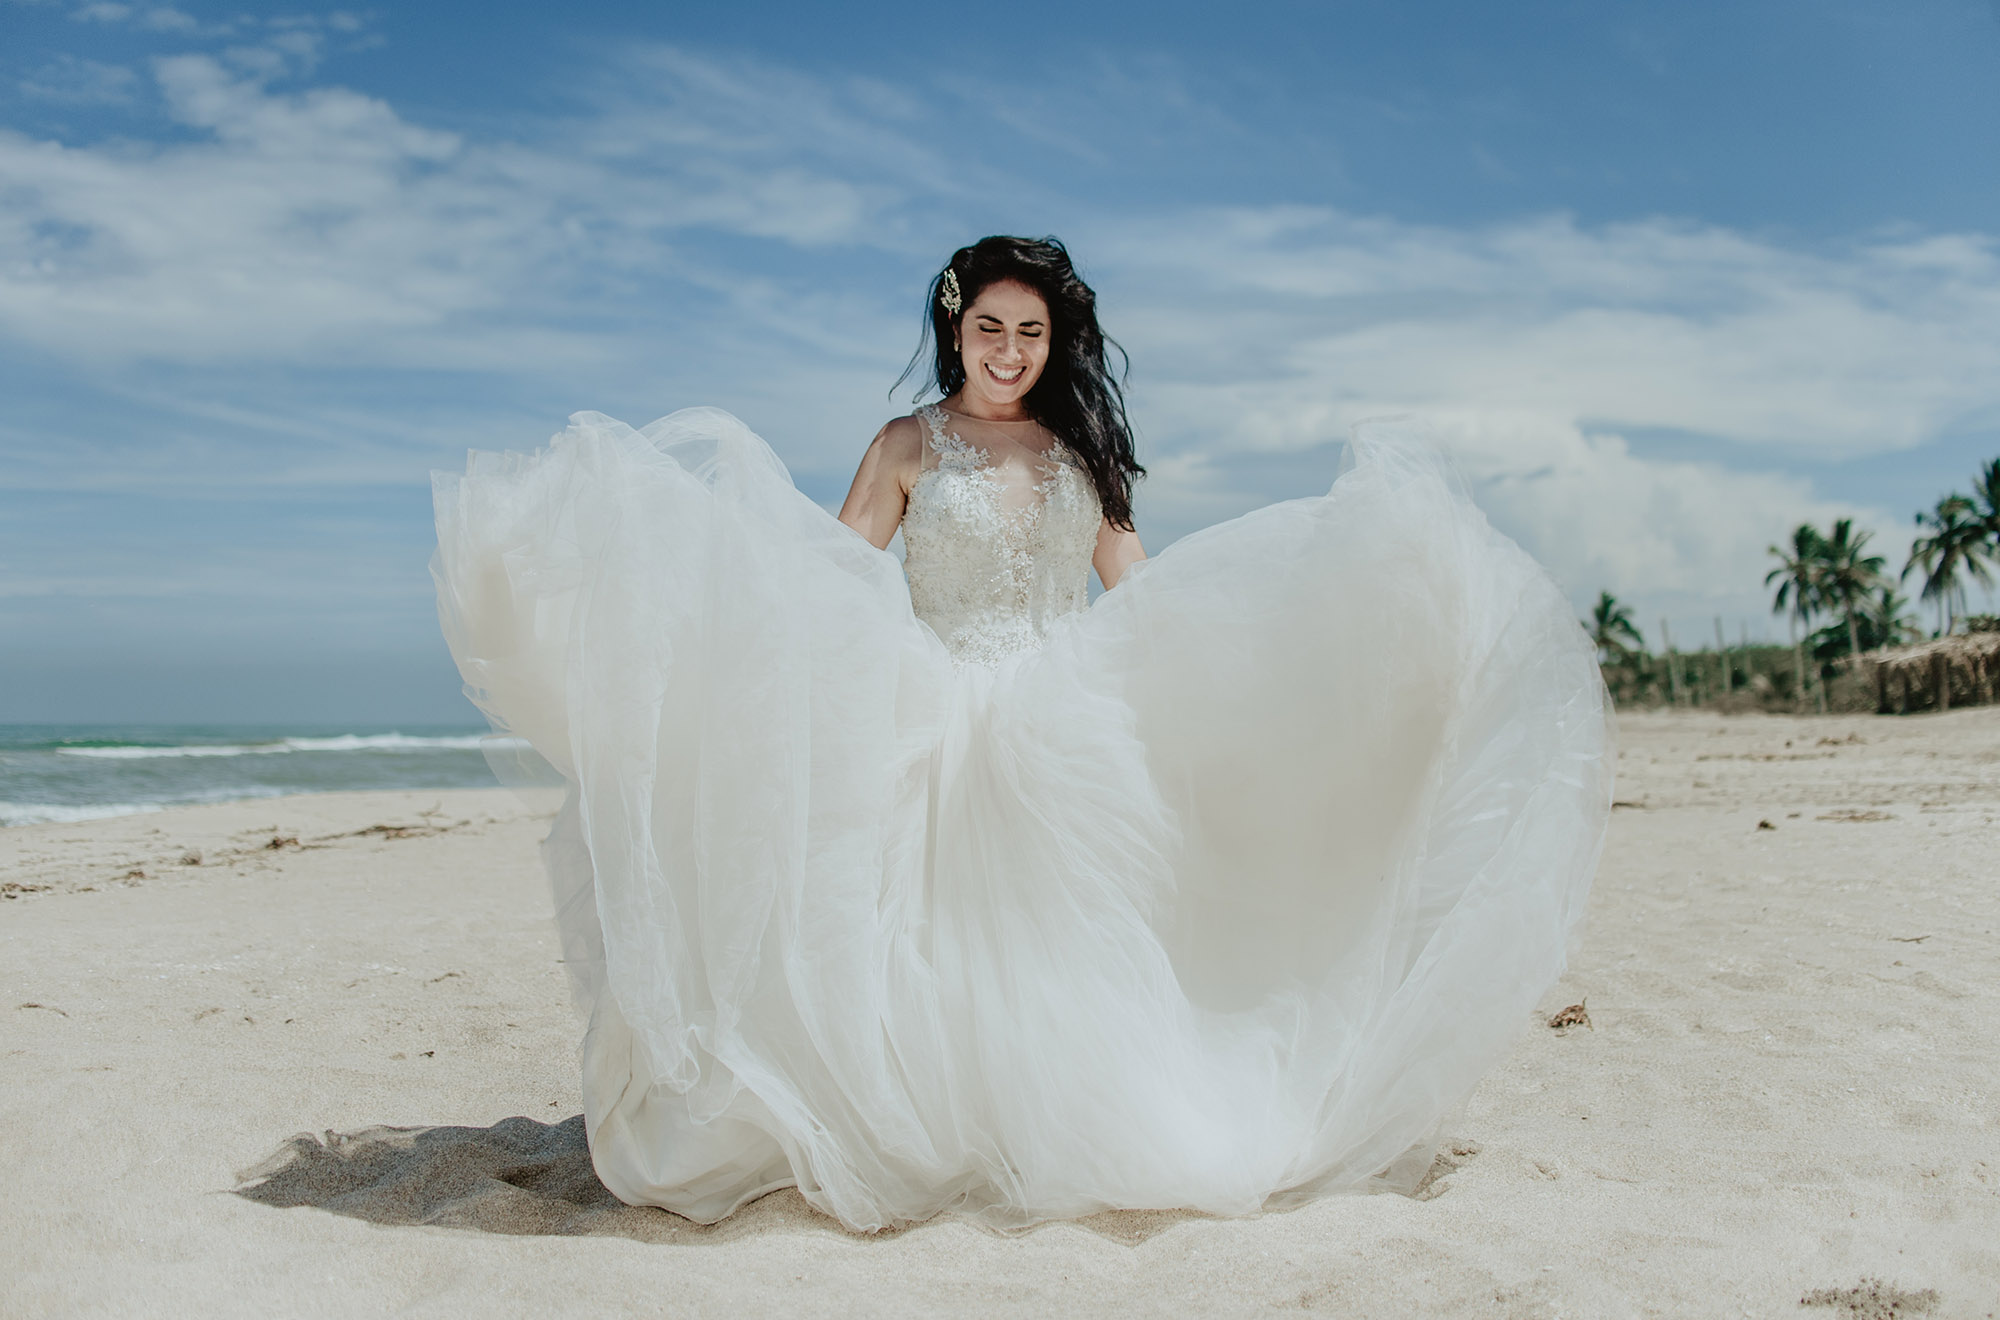 bibi y aldo trash the dress131.jpg